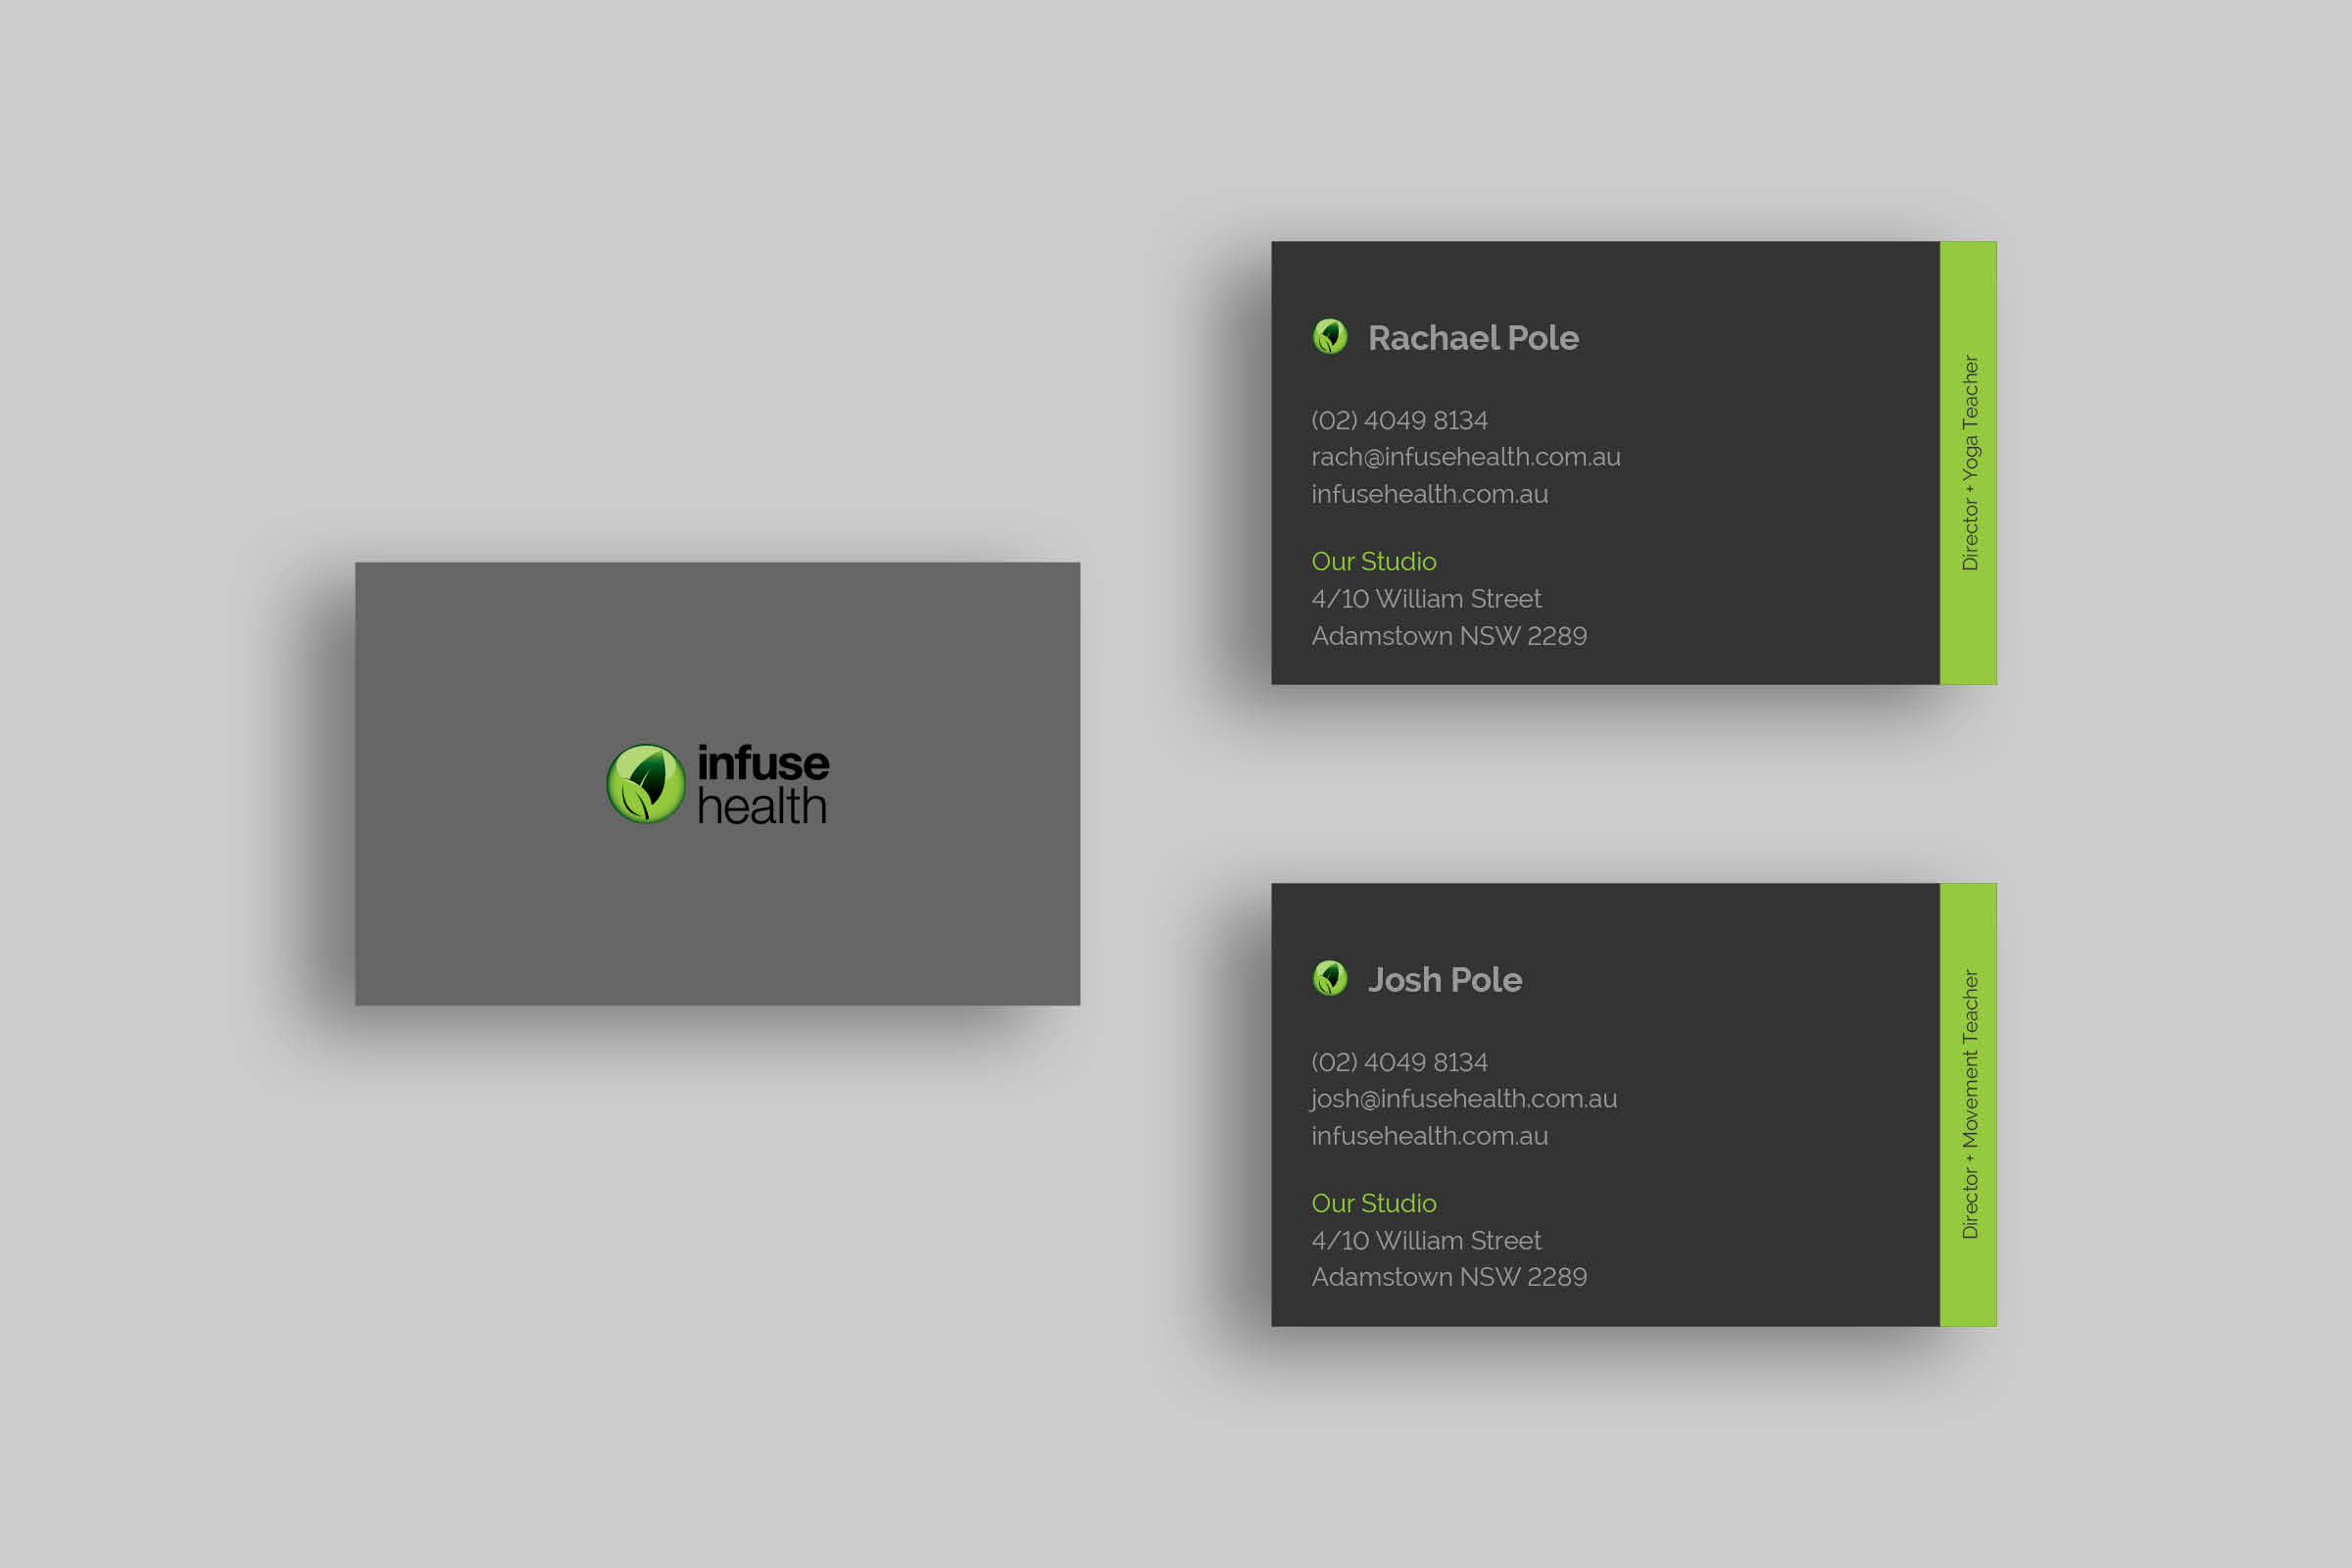 grey business cards with a vibrant green brand colour